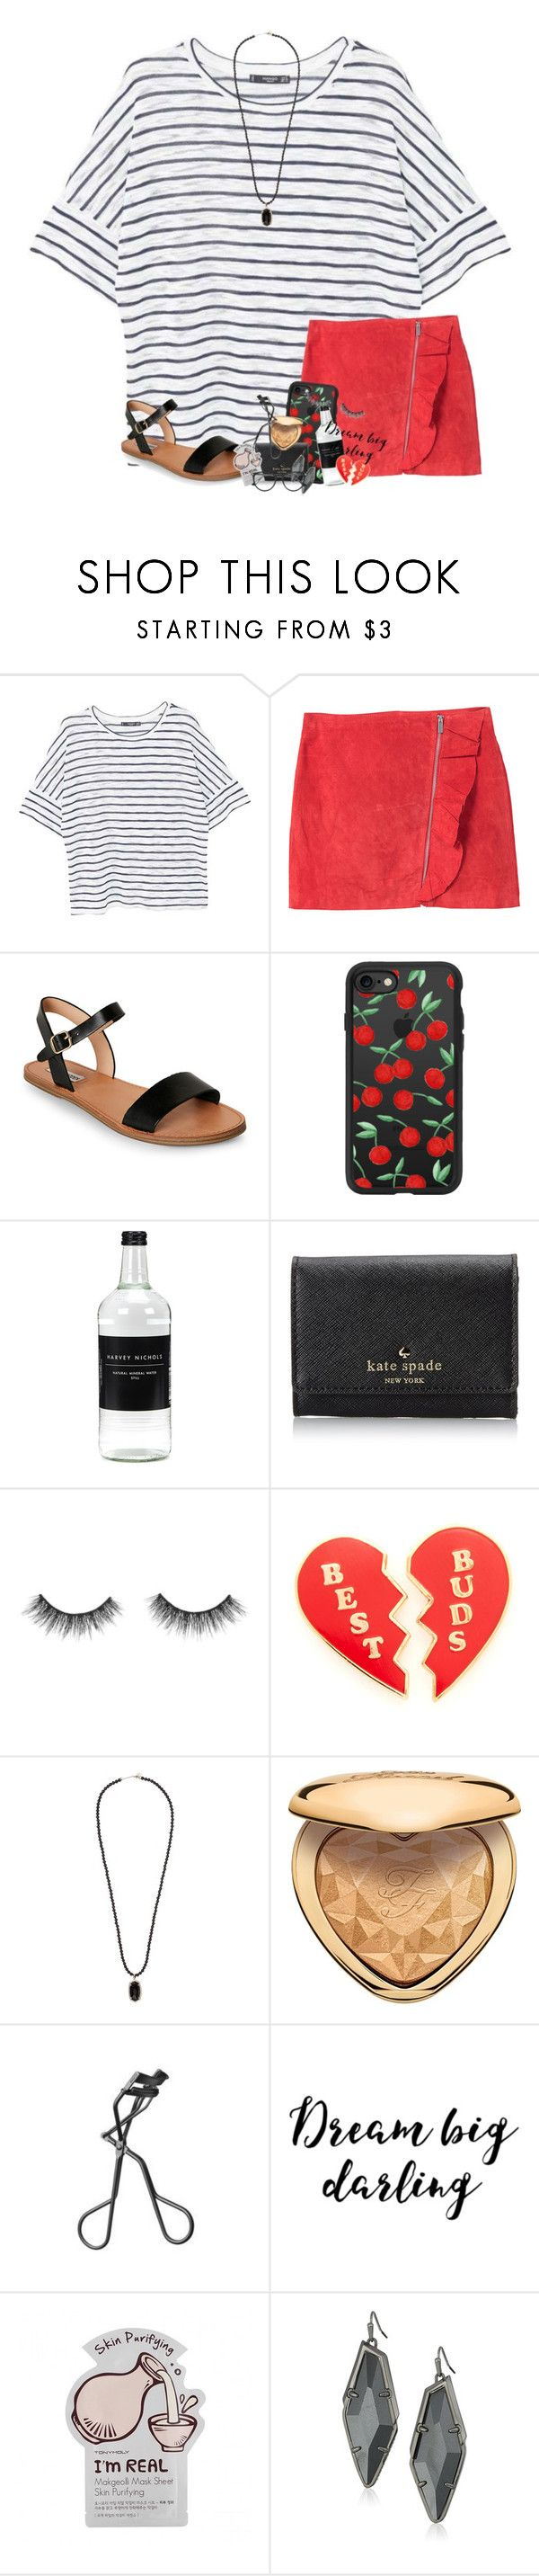 """my friend and I won as middle school reps for the Empowering Young Women Club!!!"" by karinaceleste ❤ liked on Polyvore featuring MANGO, Steve Madden, Casetify, Kate Spade, Georgia Perry, Kendra Scott, Too Faced Cosmetics, NARS Cosmetics, Charlotte Russe and Gucci"